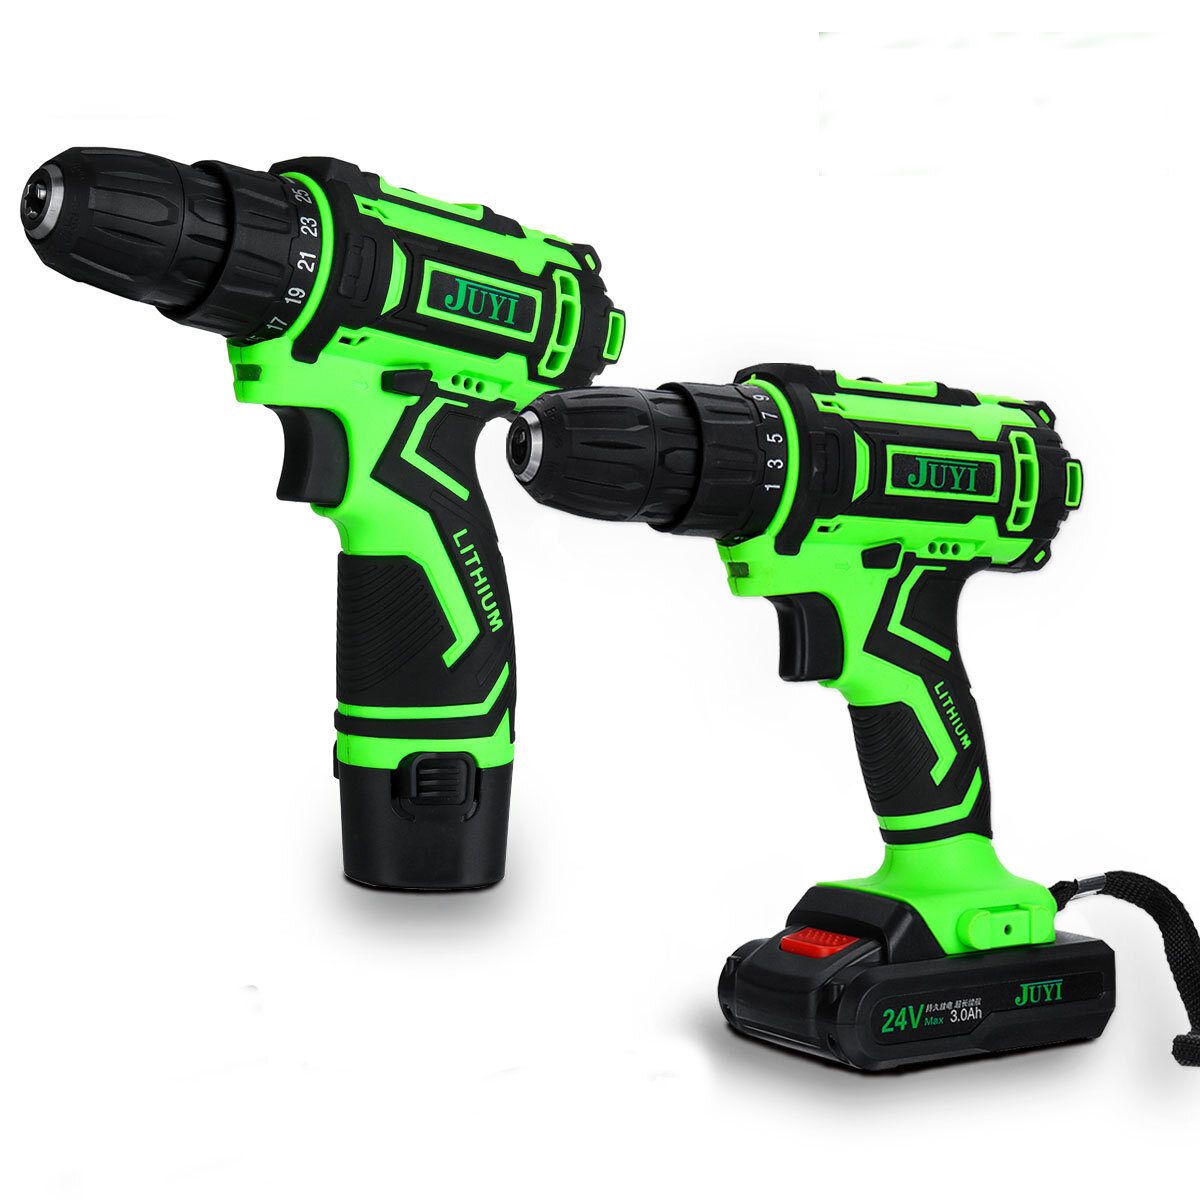 42VF Li-Ion Battery Cordless Rechargeable Electric Impact Drill Driver Screwdriver LED Light - 1